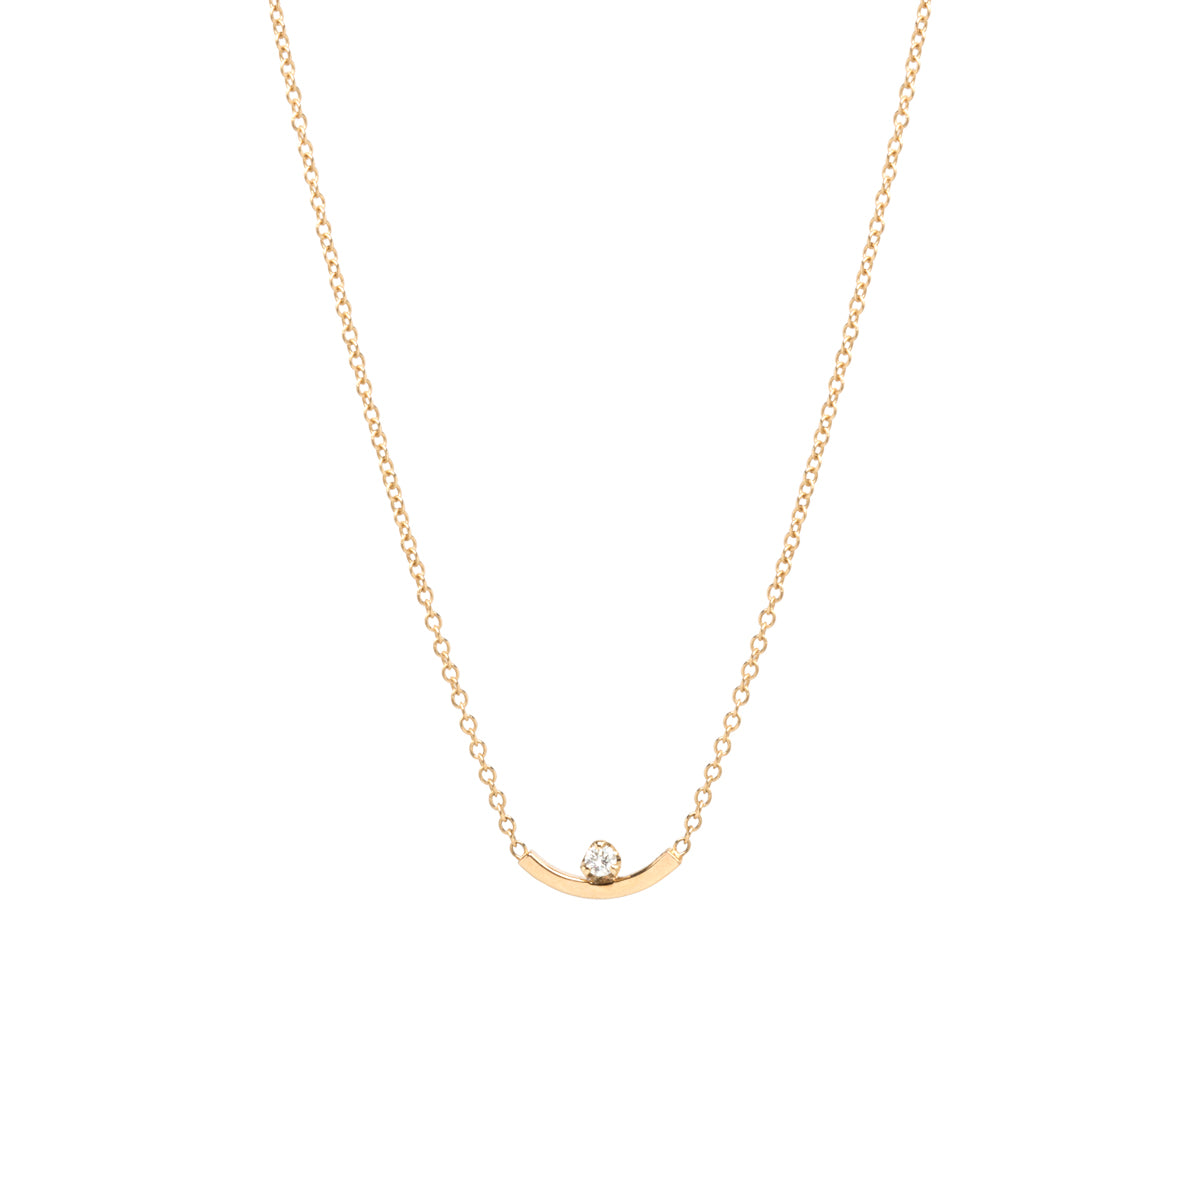 14k Curved Bar Prong Diamond Necklace